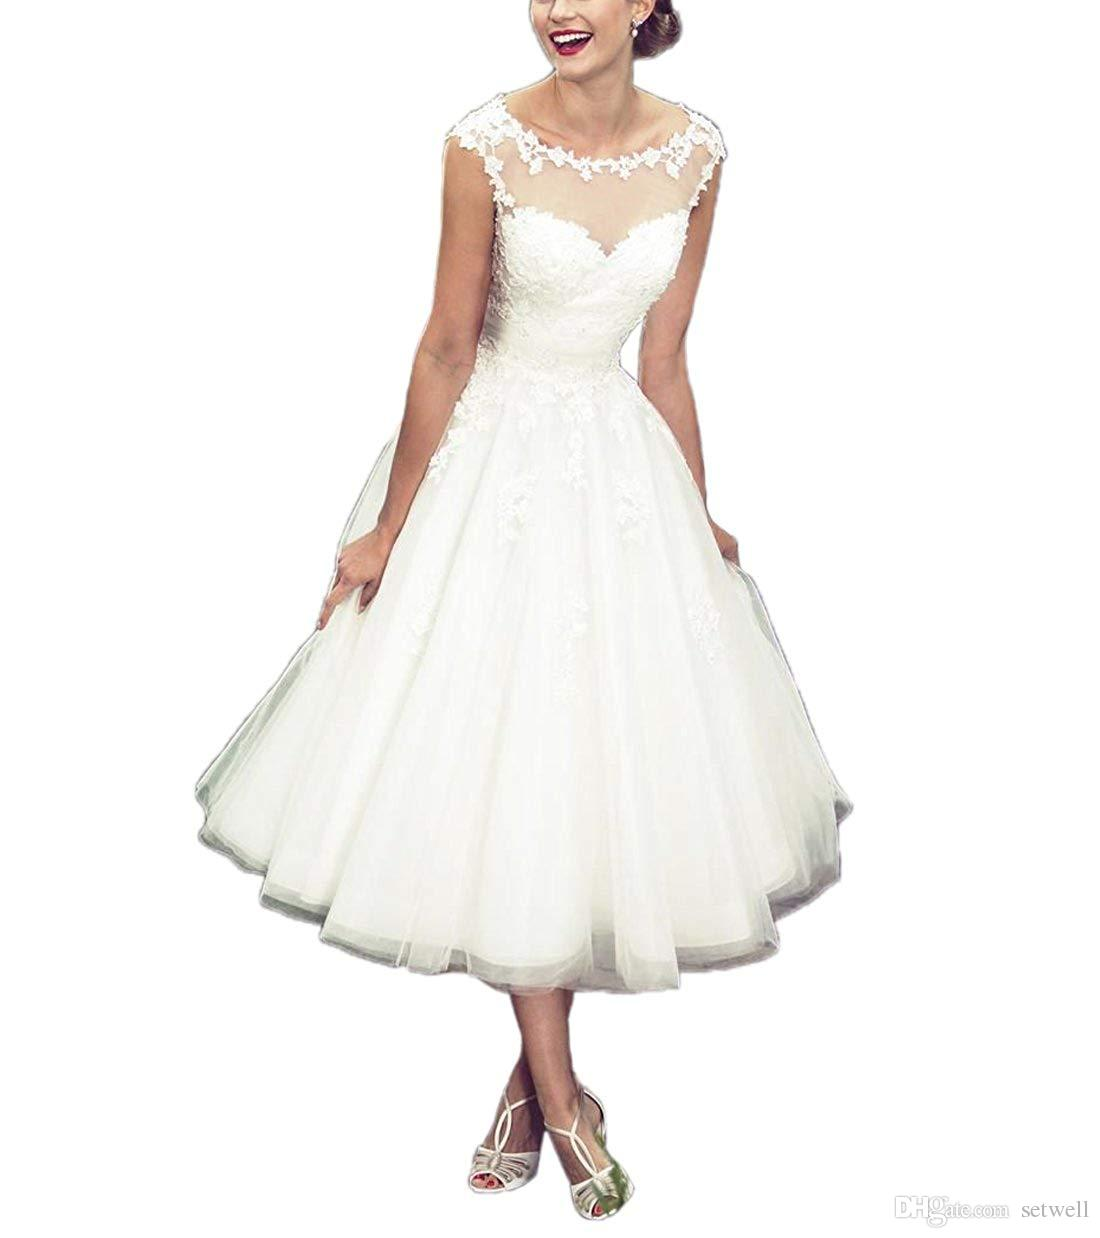 904a2ffb1c3a Discount Setwell 2019 White Ivory Scoop Sheer Neck A Line Wedding Dress  Sleeveless Knee Length Pleated Lace Tulle Bridal Gown Wedding Dresses  London Wedding ...